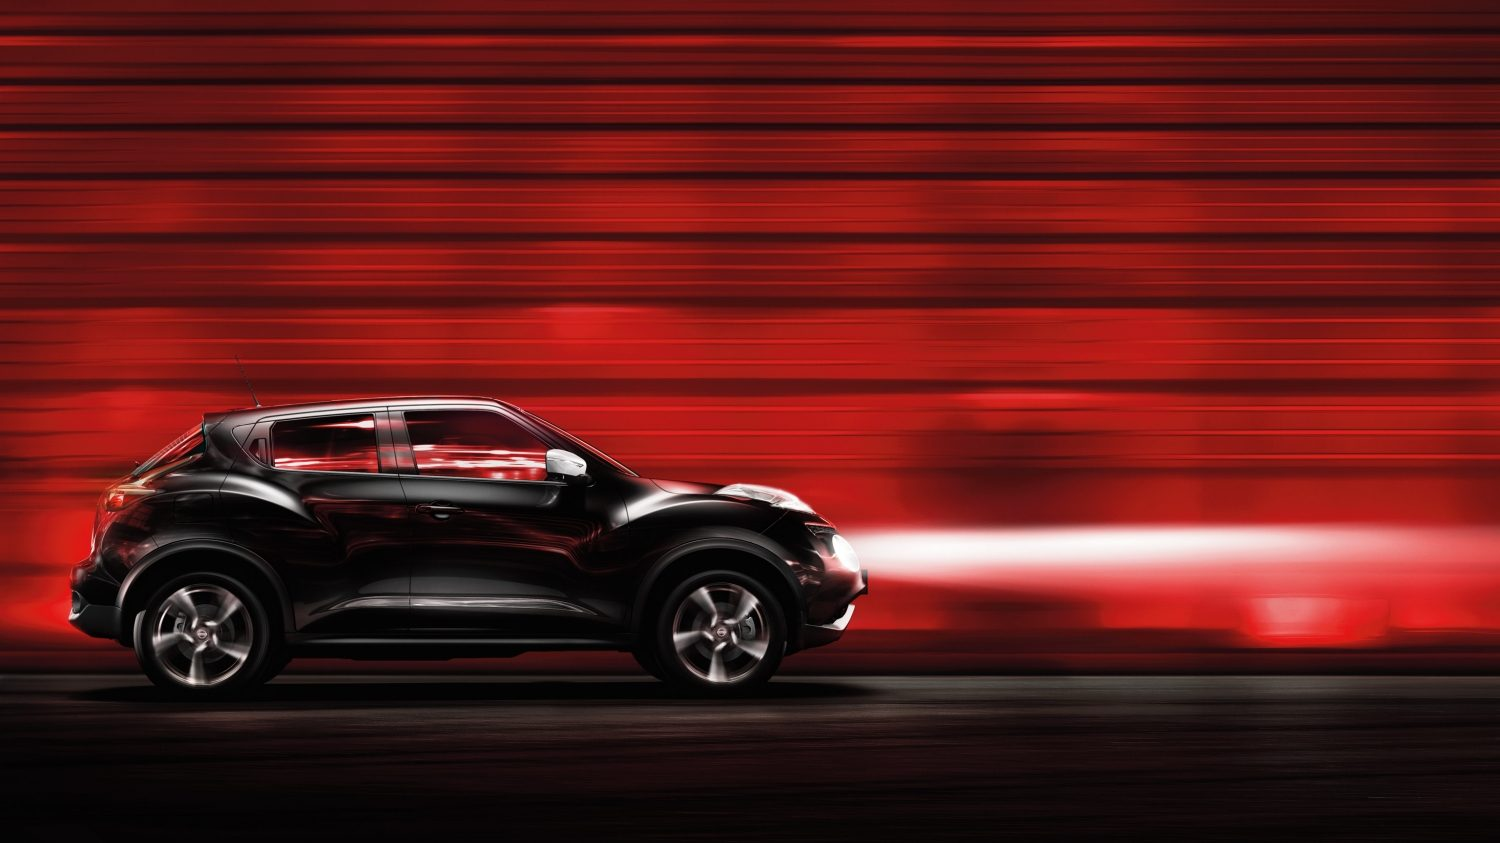 Compact & mini SUV design - black profile view | Nissan Juke